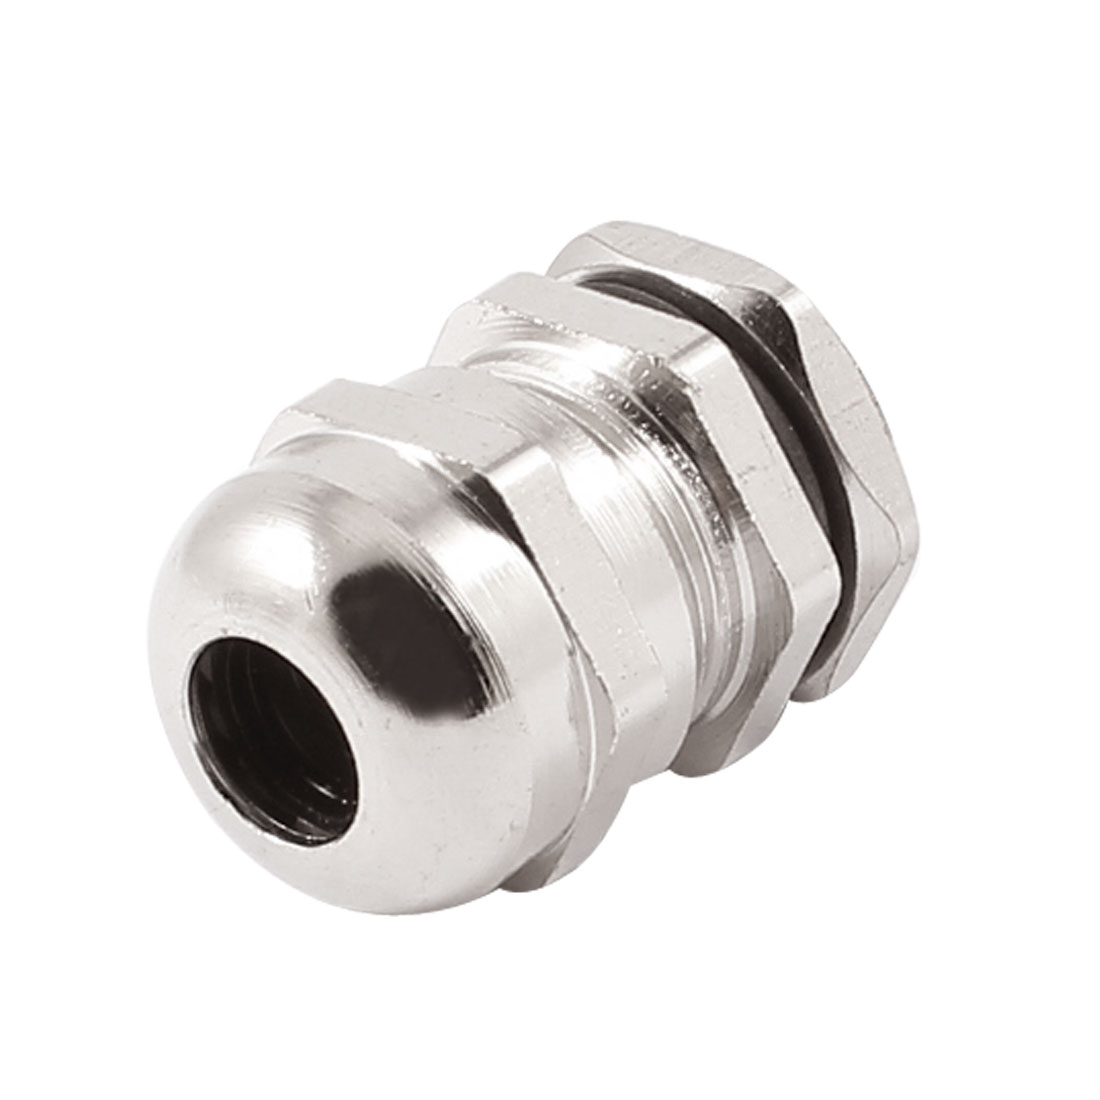 Silver Tone Water Proof PG9 4-8mm Jiont Cable Gland Connector